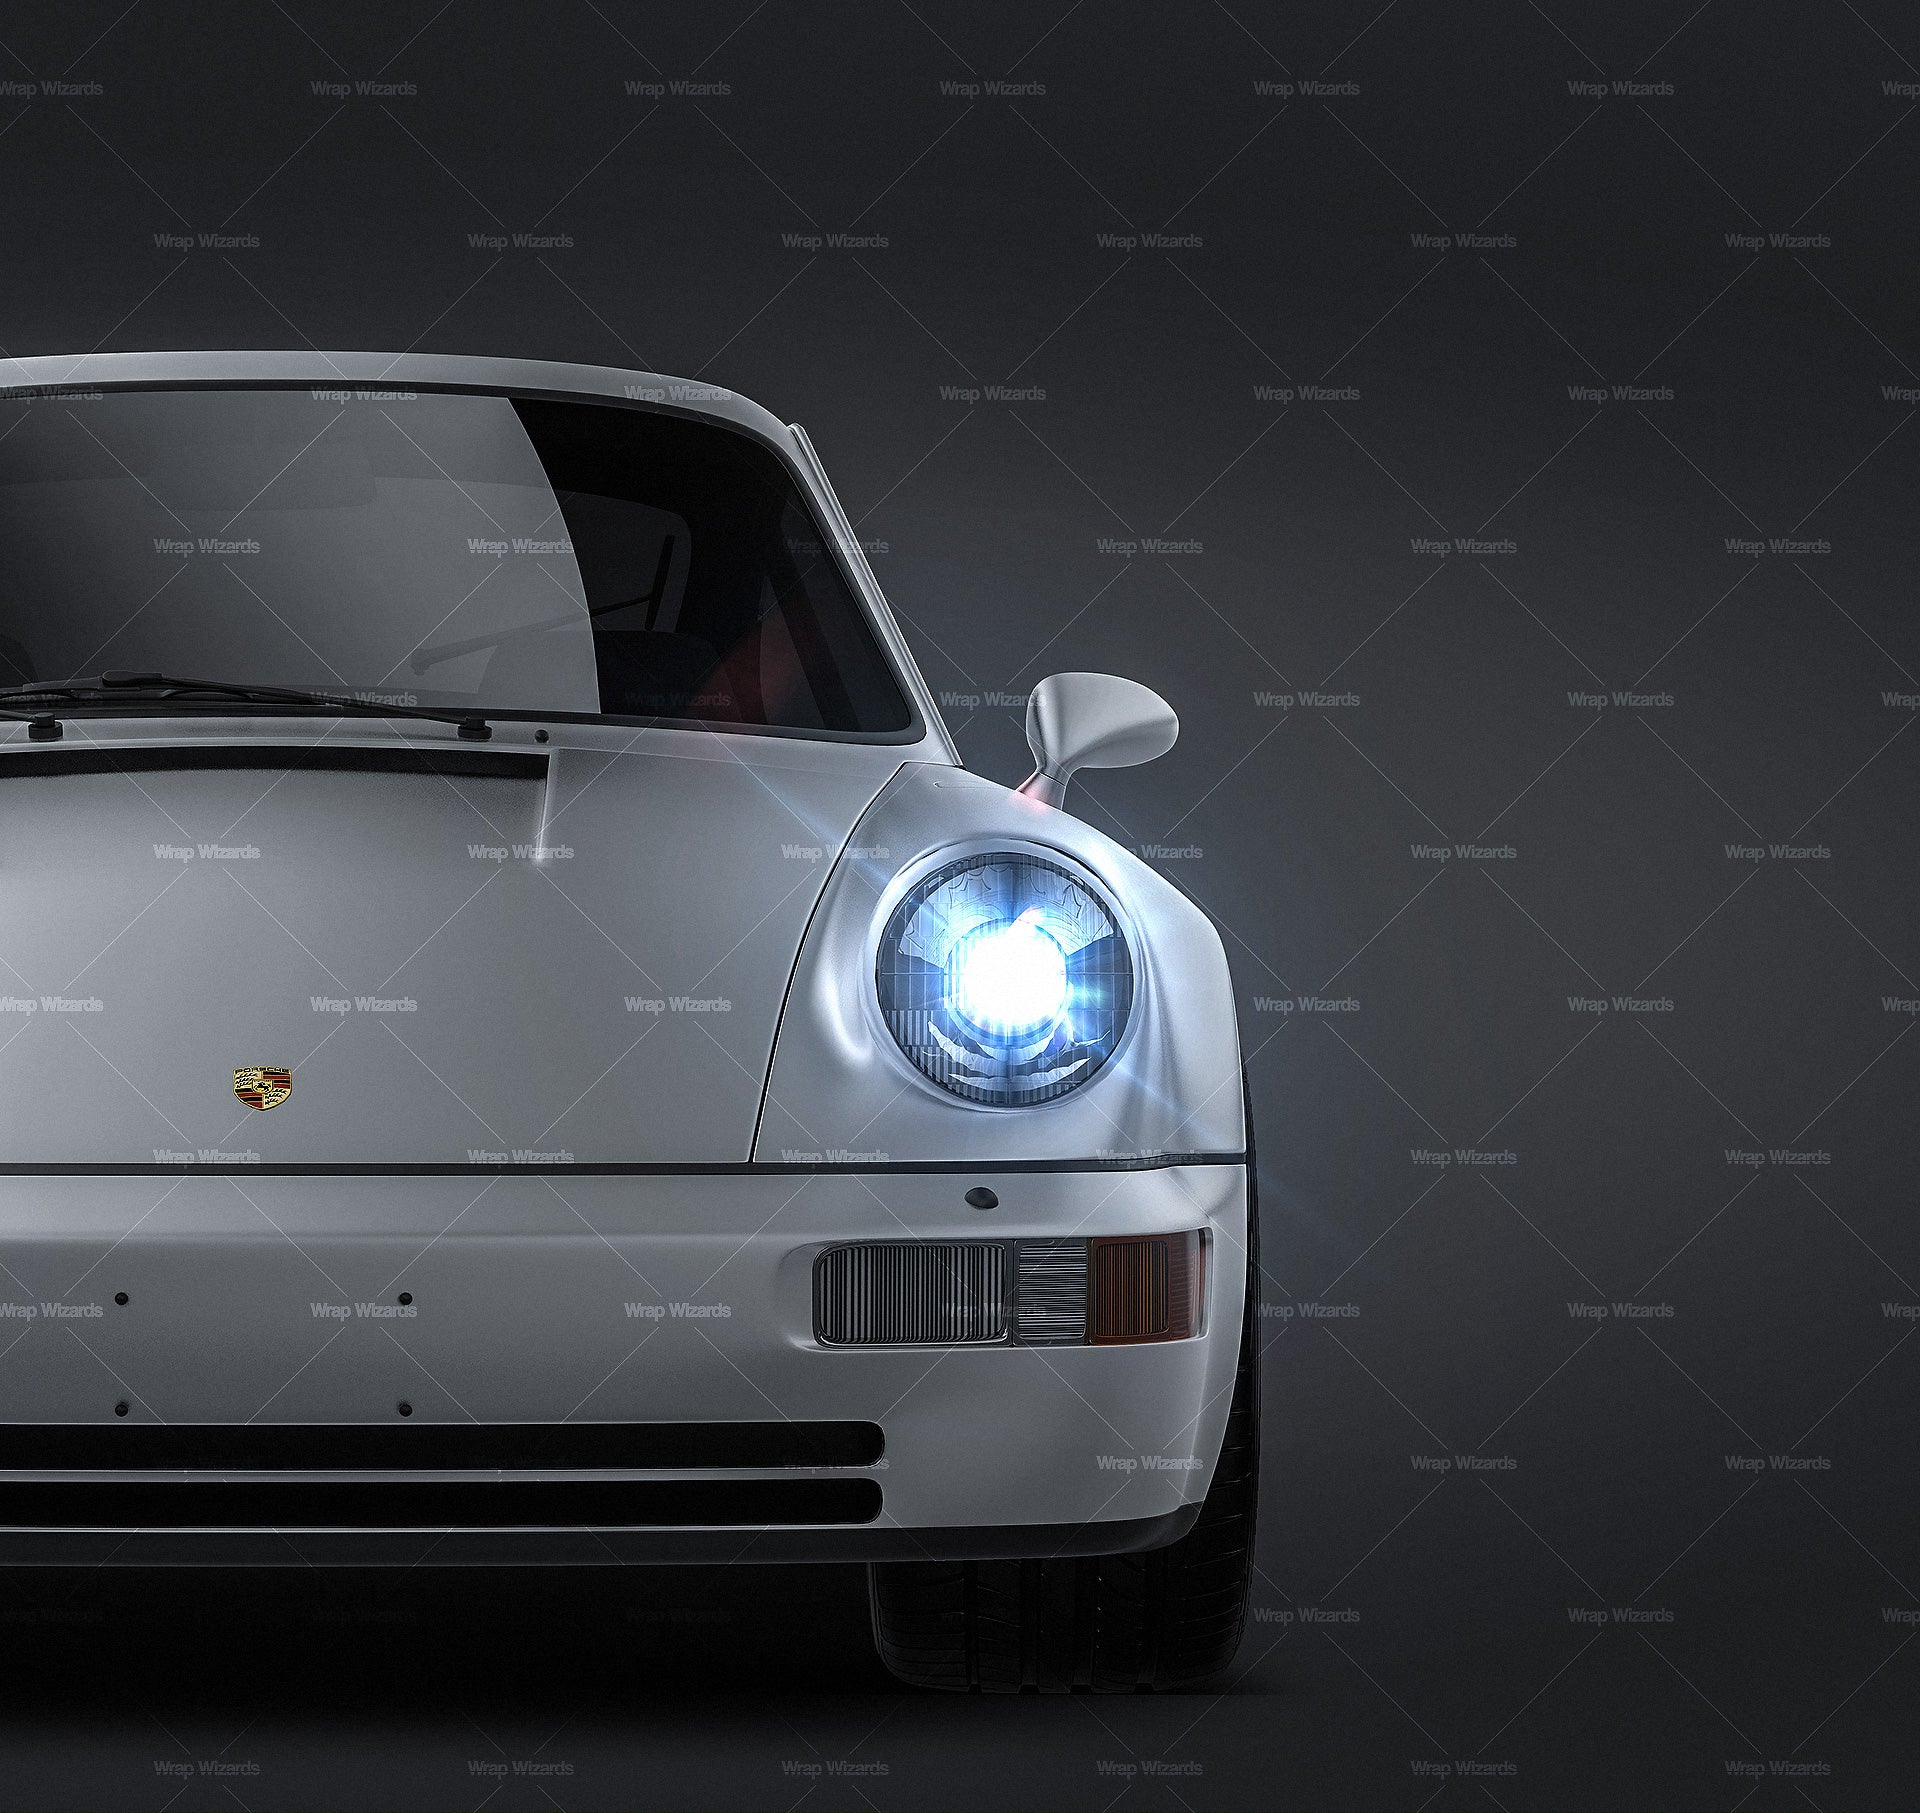 Porsche 911 964 Turbo 1990 satin matt finish - all sides Car Mockup Template.psd